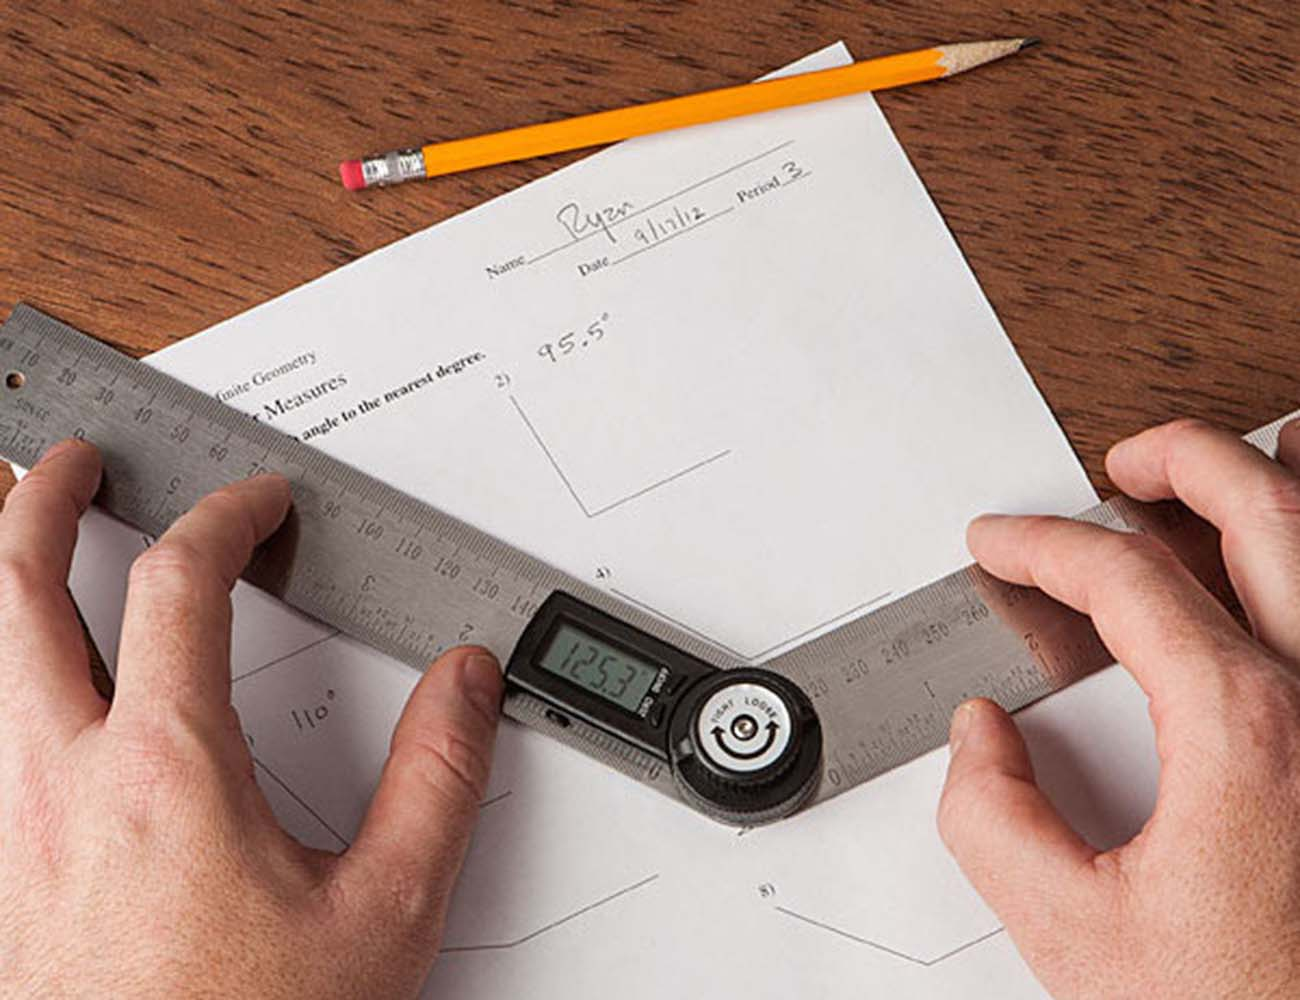 Digital Protractor – Take the Guesswork Out of Measurement Forever